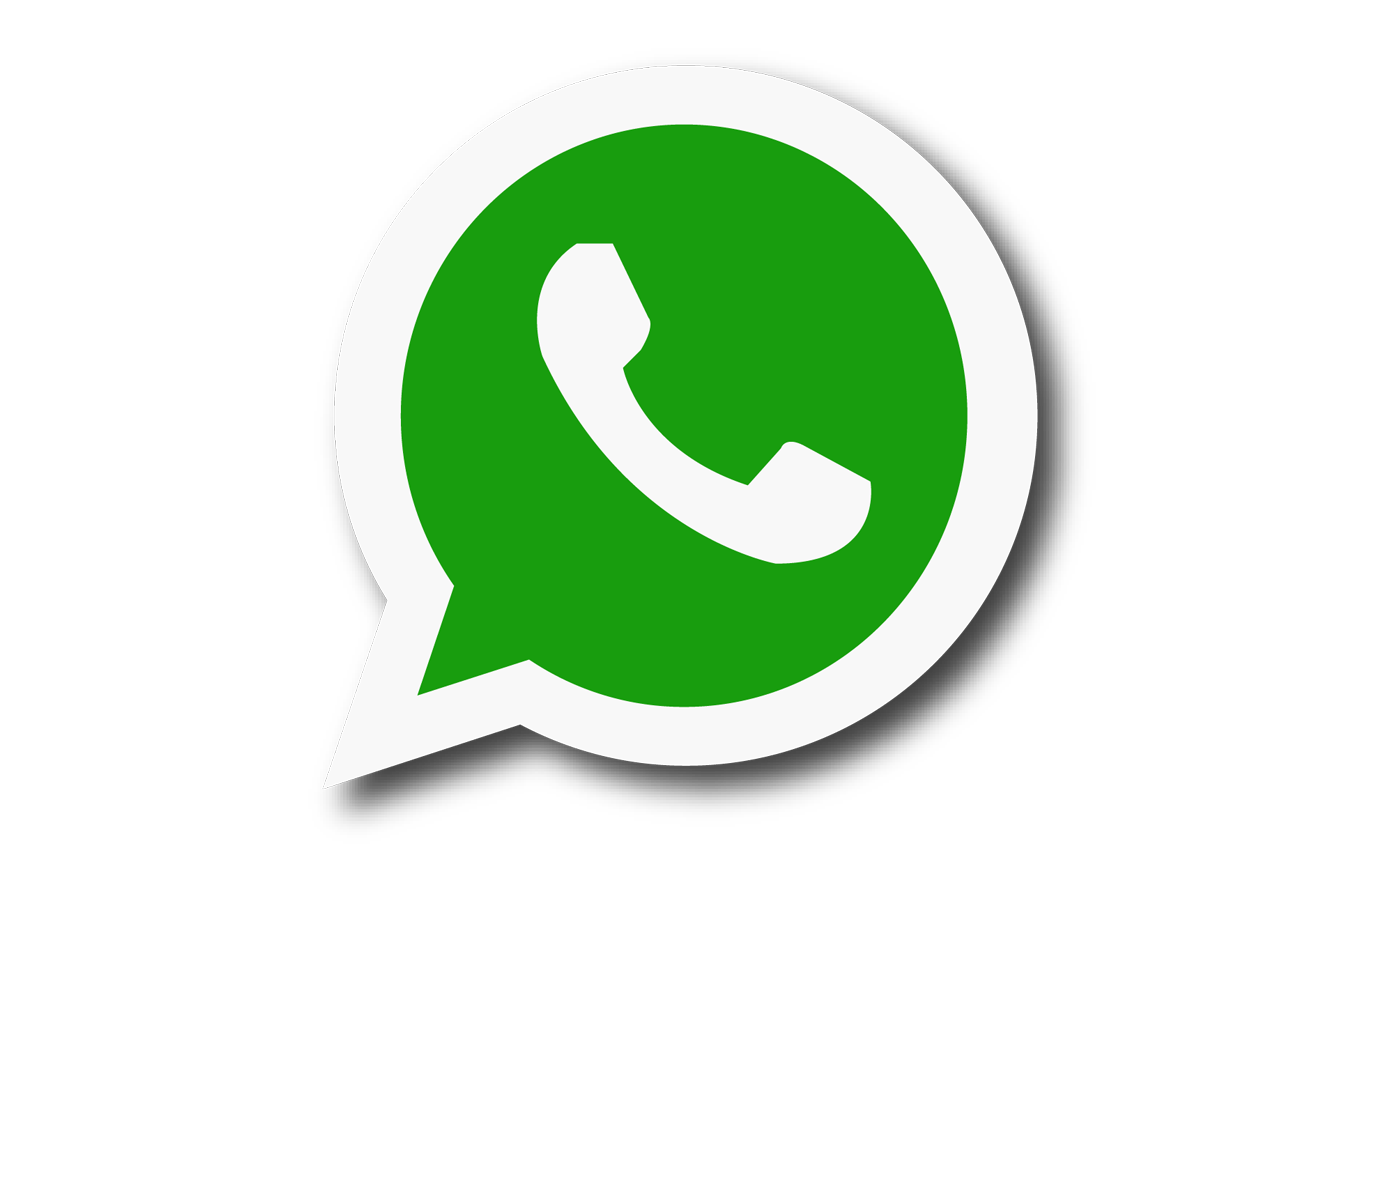 Simbolo whatsapp png. Transparent images pluspng image